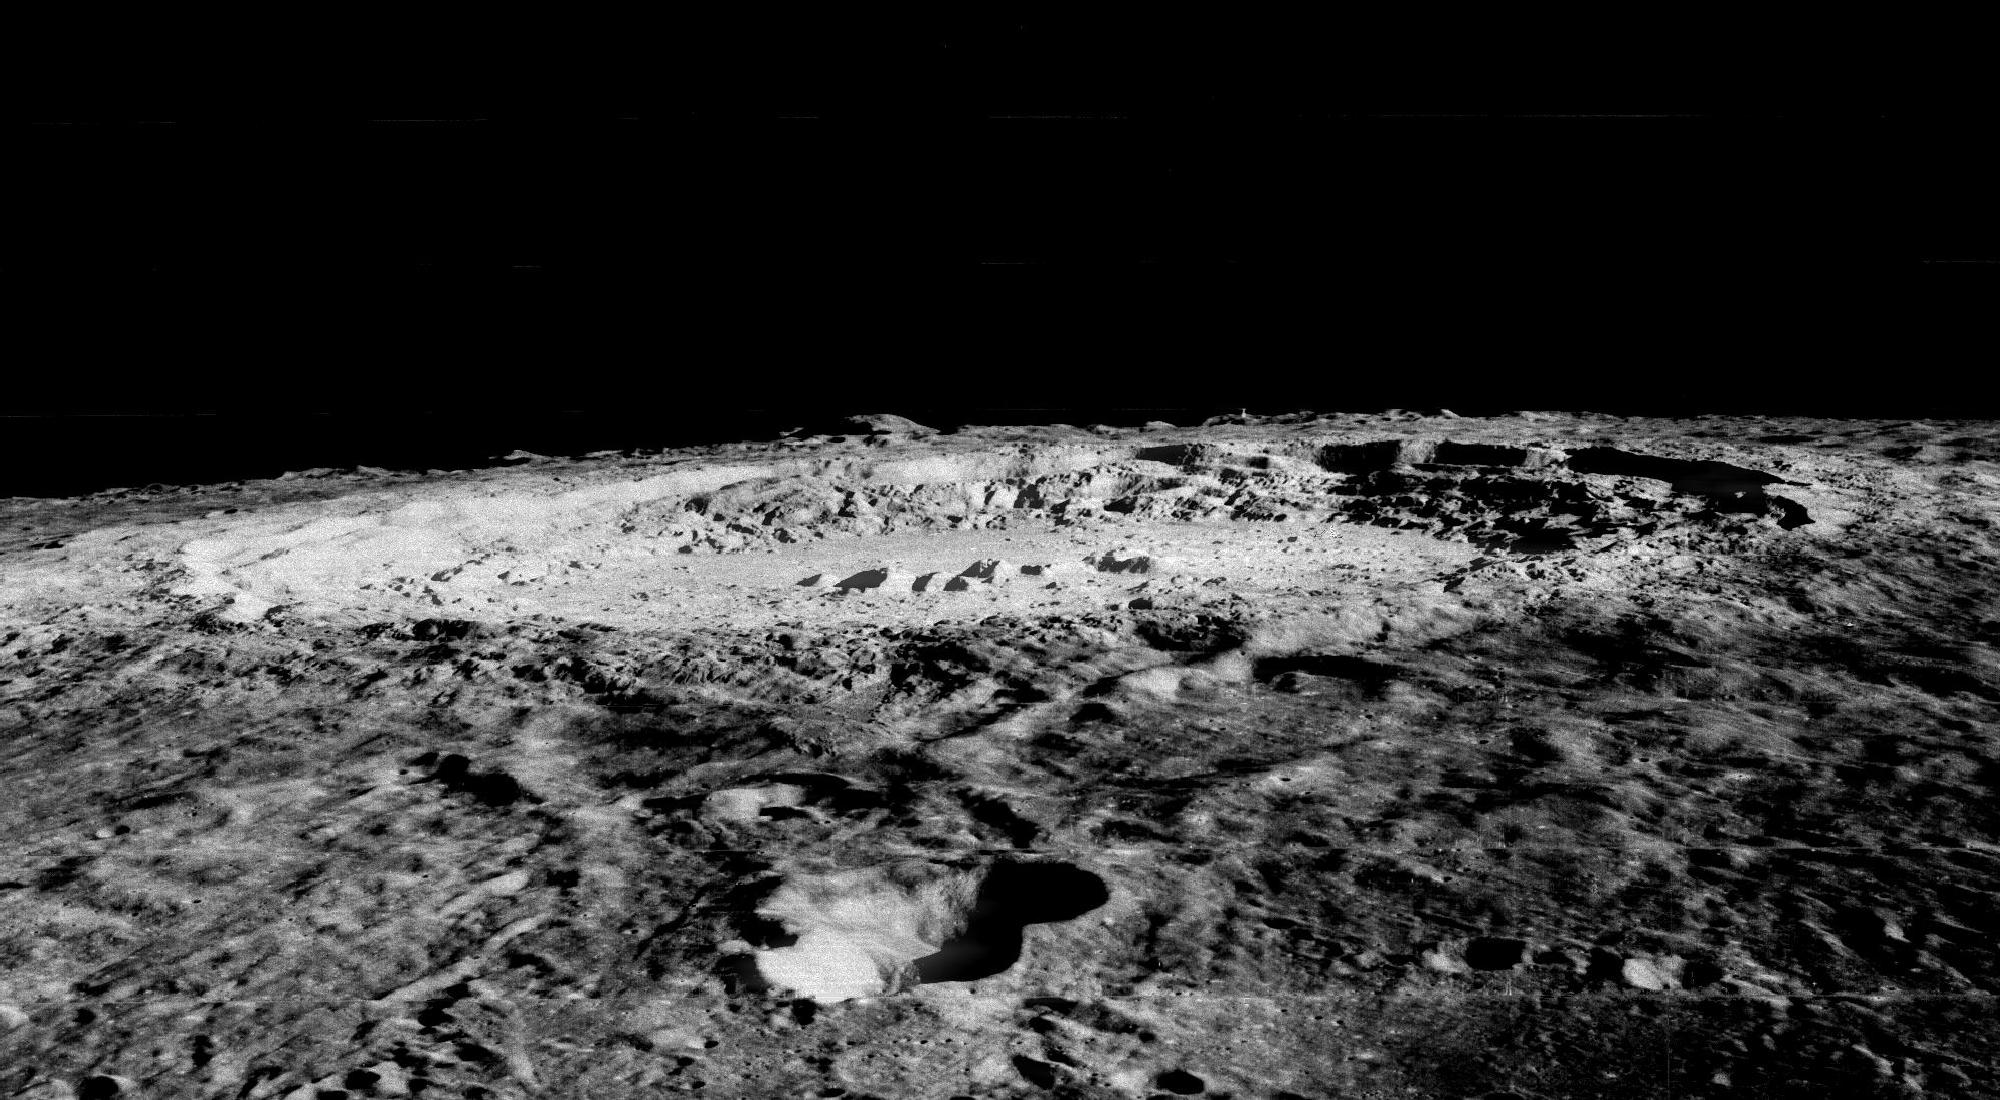 large, rugged impact crater seen nearly edge-on on the lunar horizon